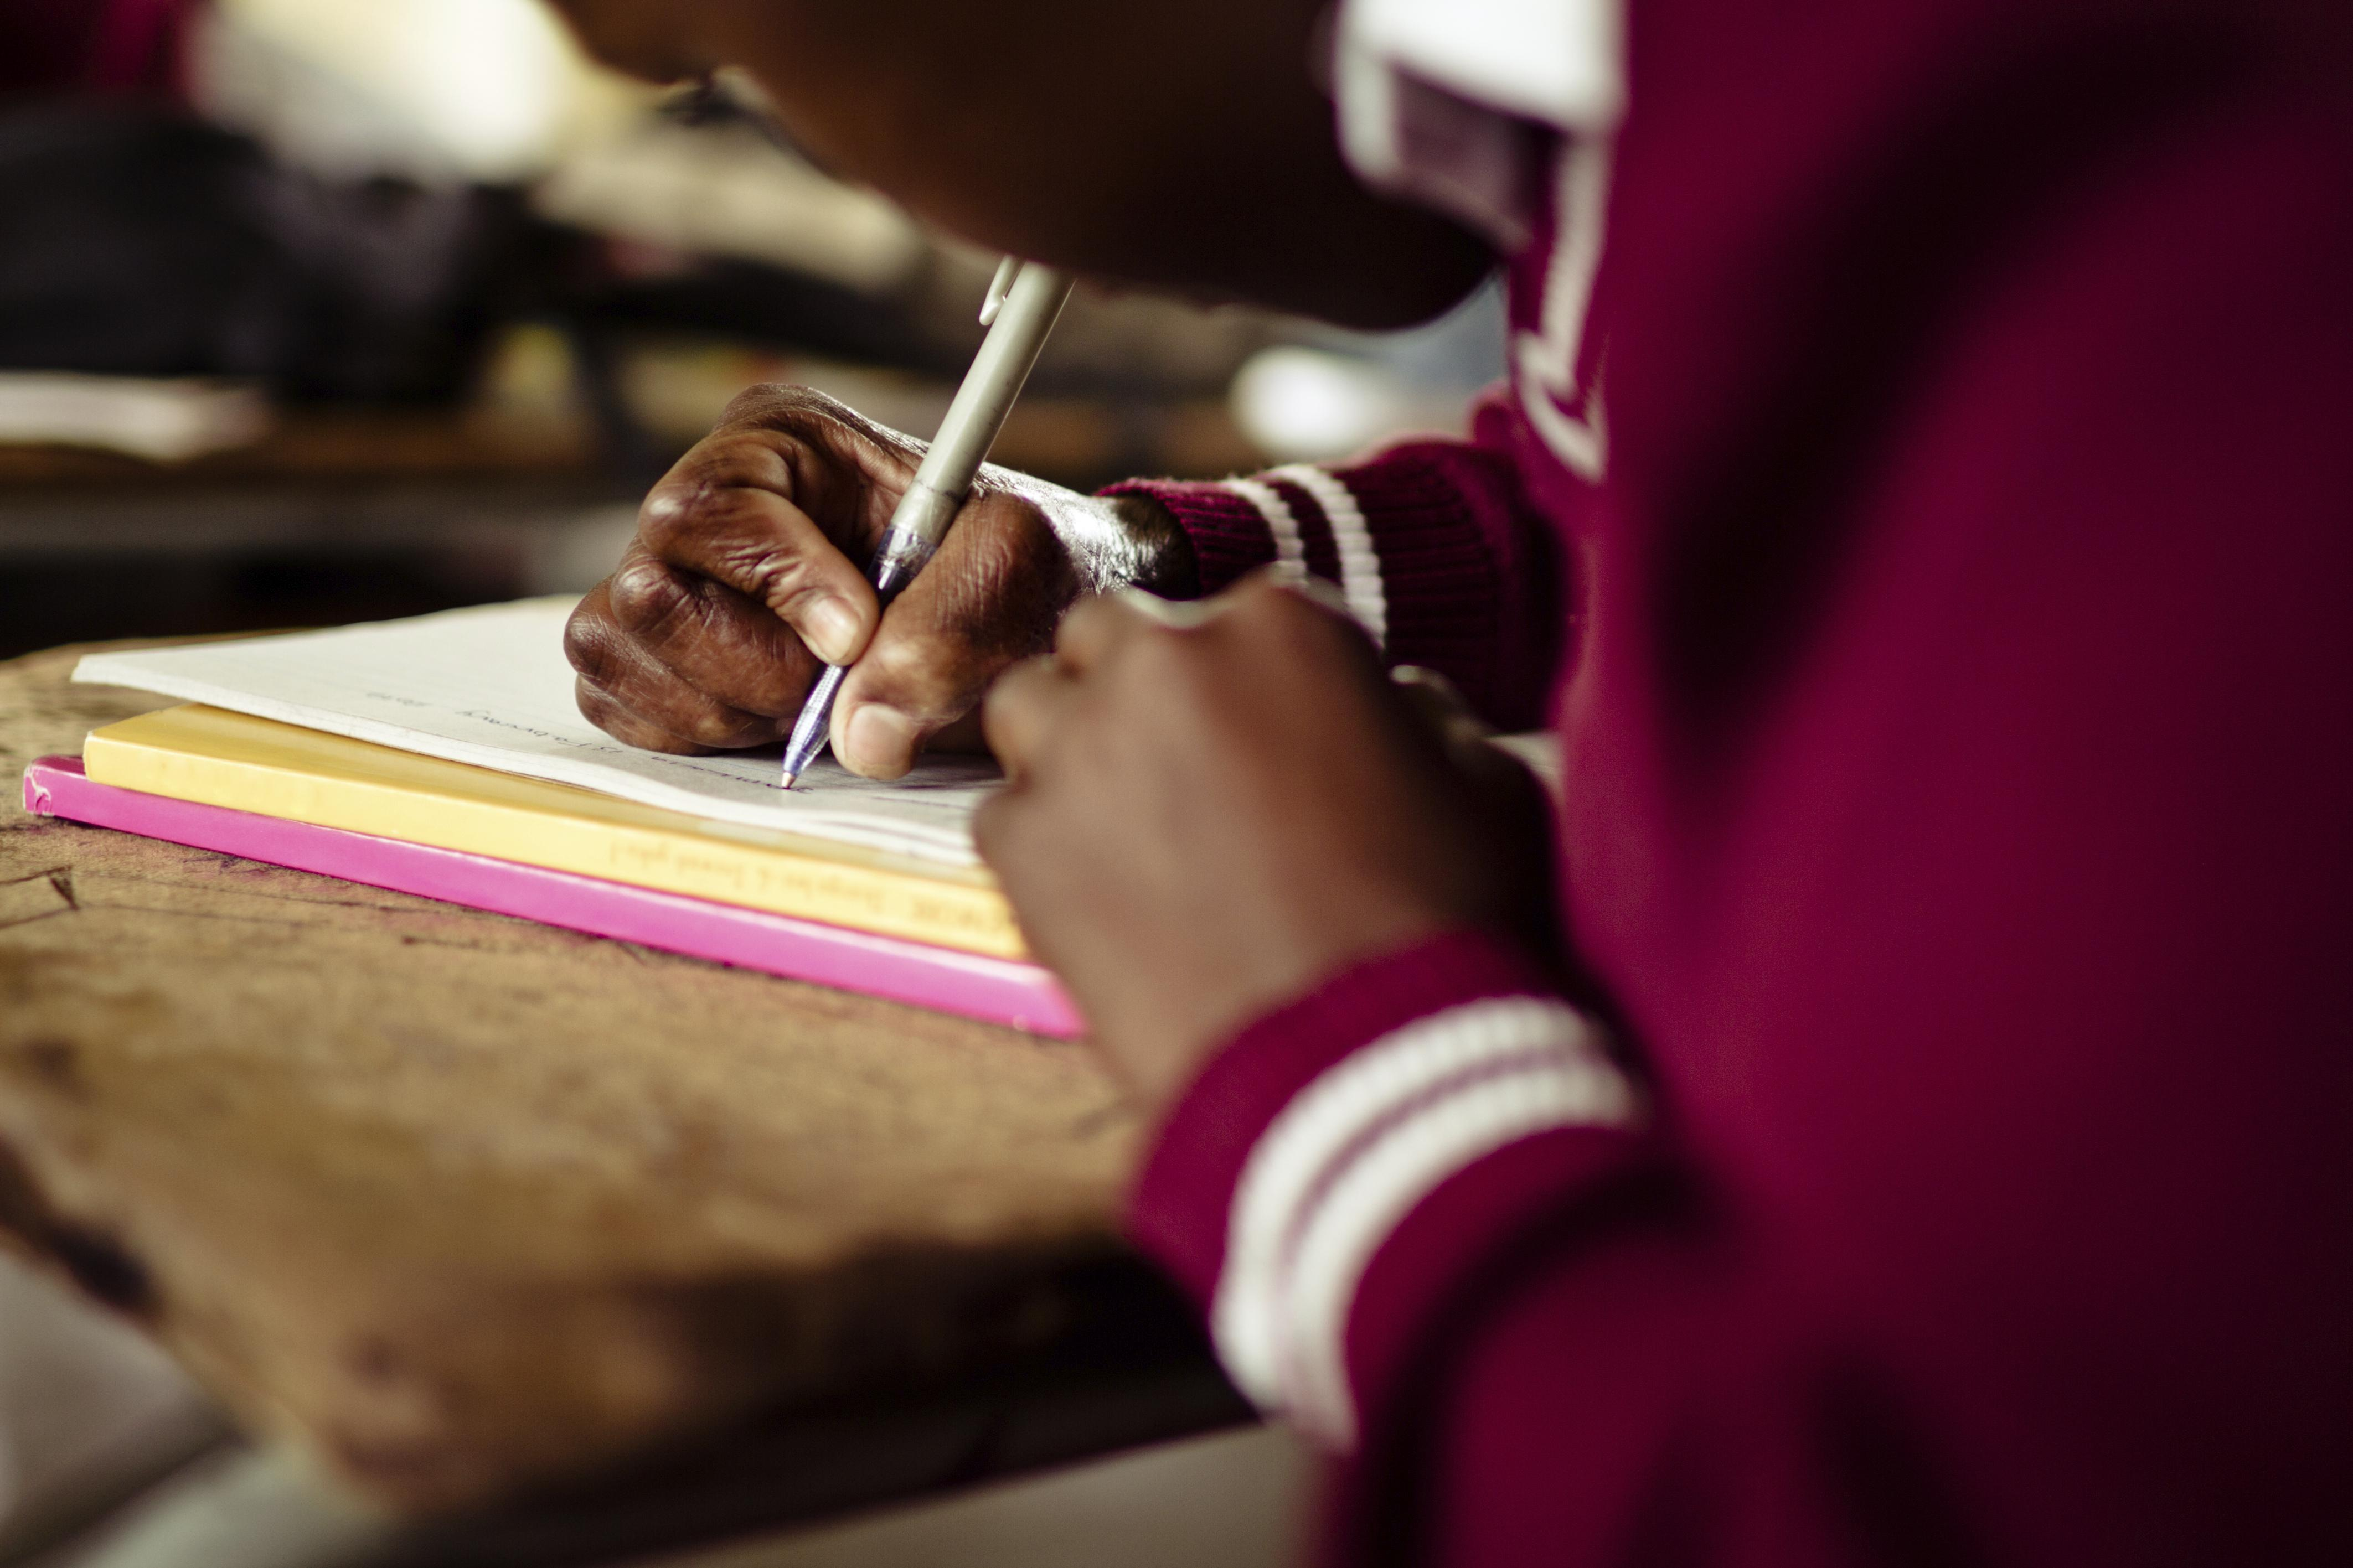 Closeup image of South African girl writing at her desk